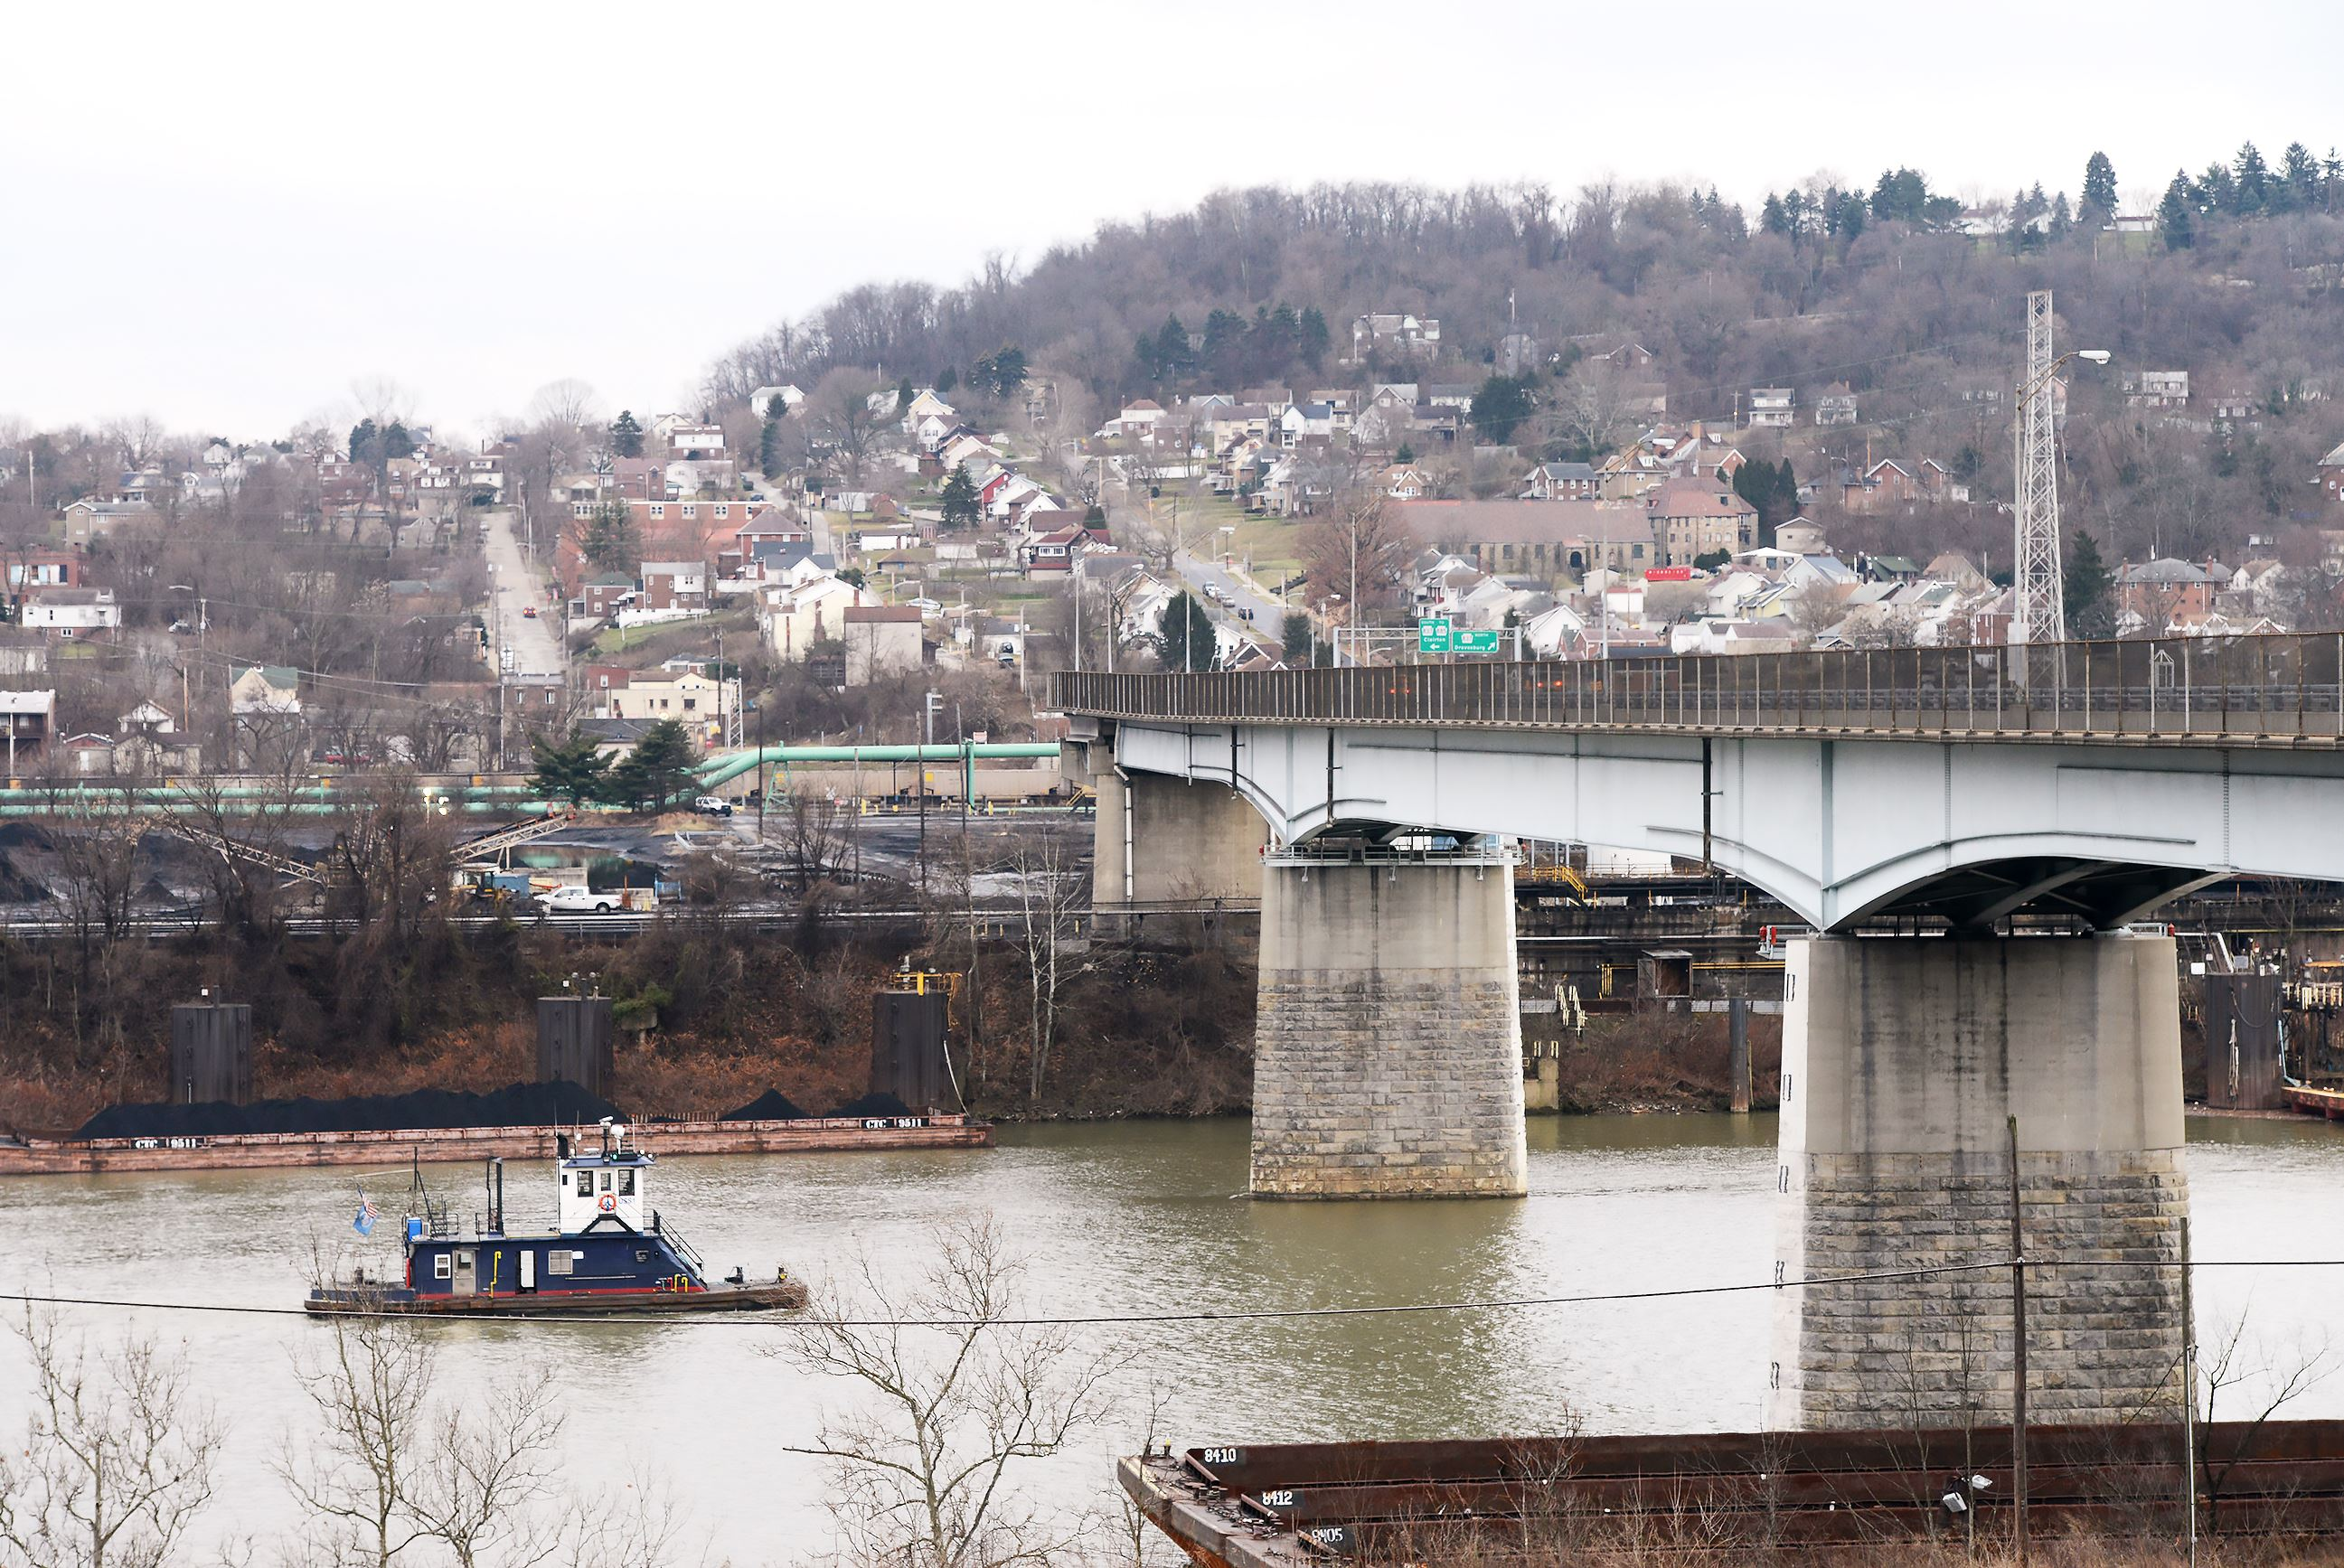 20170201rldClairton001 A view of the Wilson section of Clairton from across the Monongahela River in Glassport.